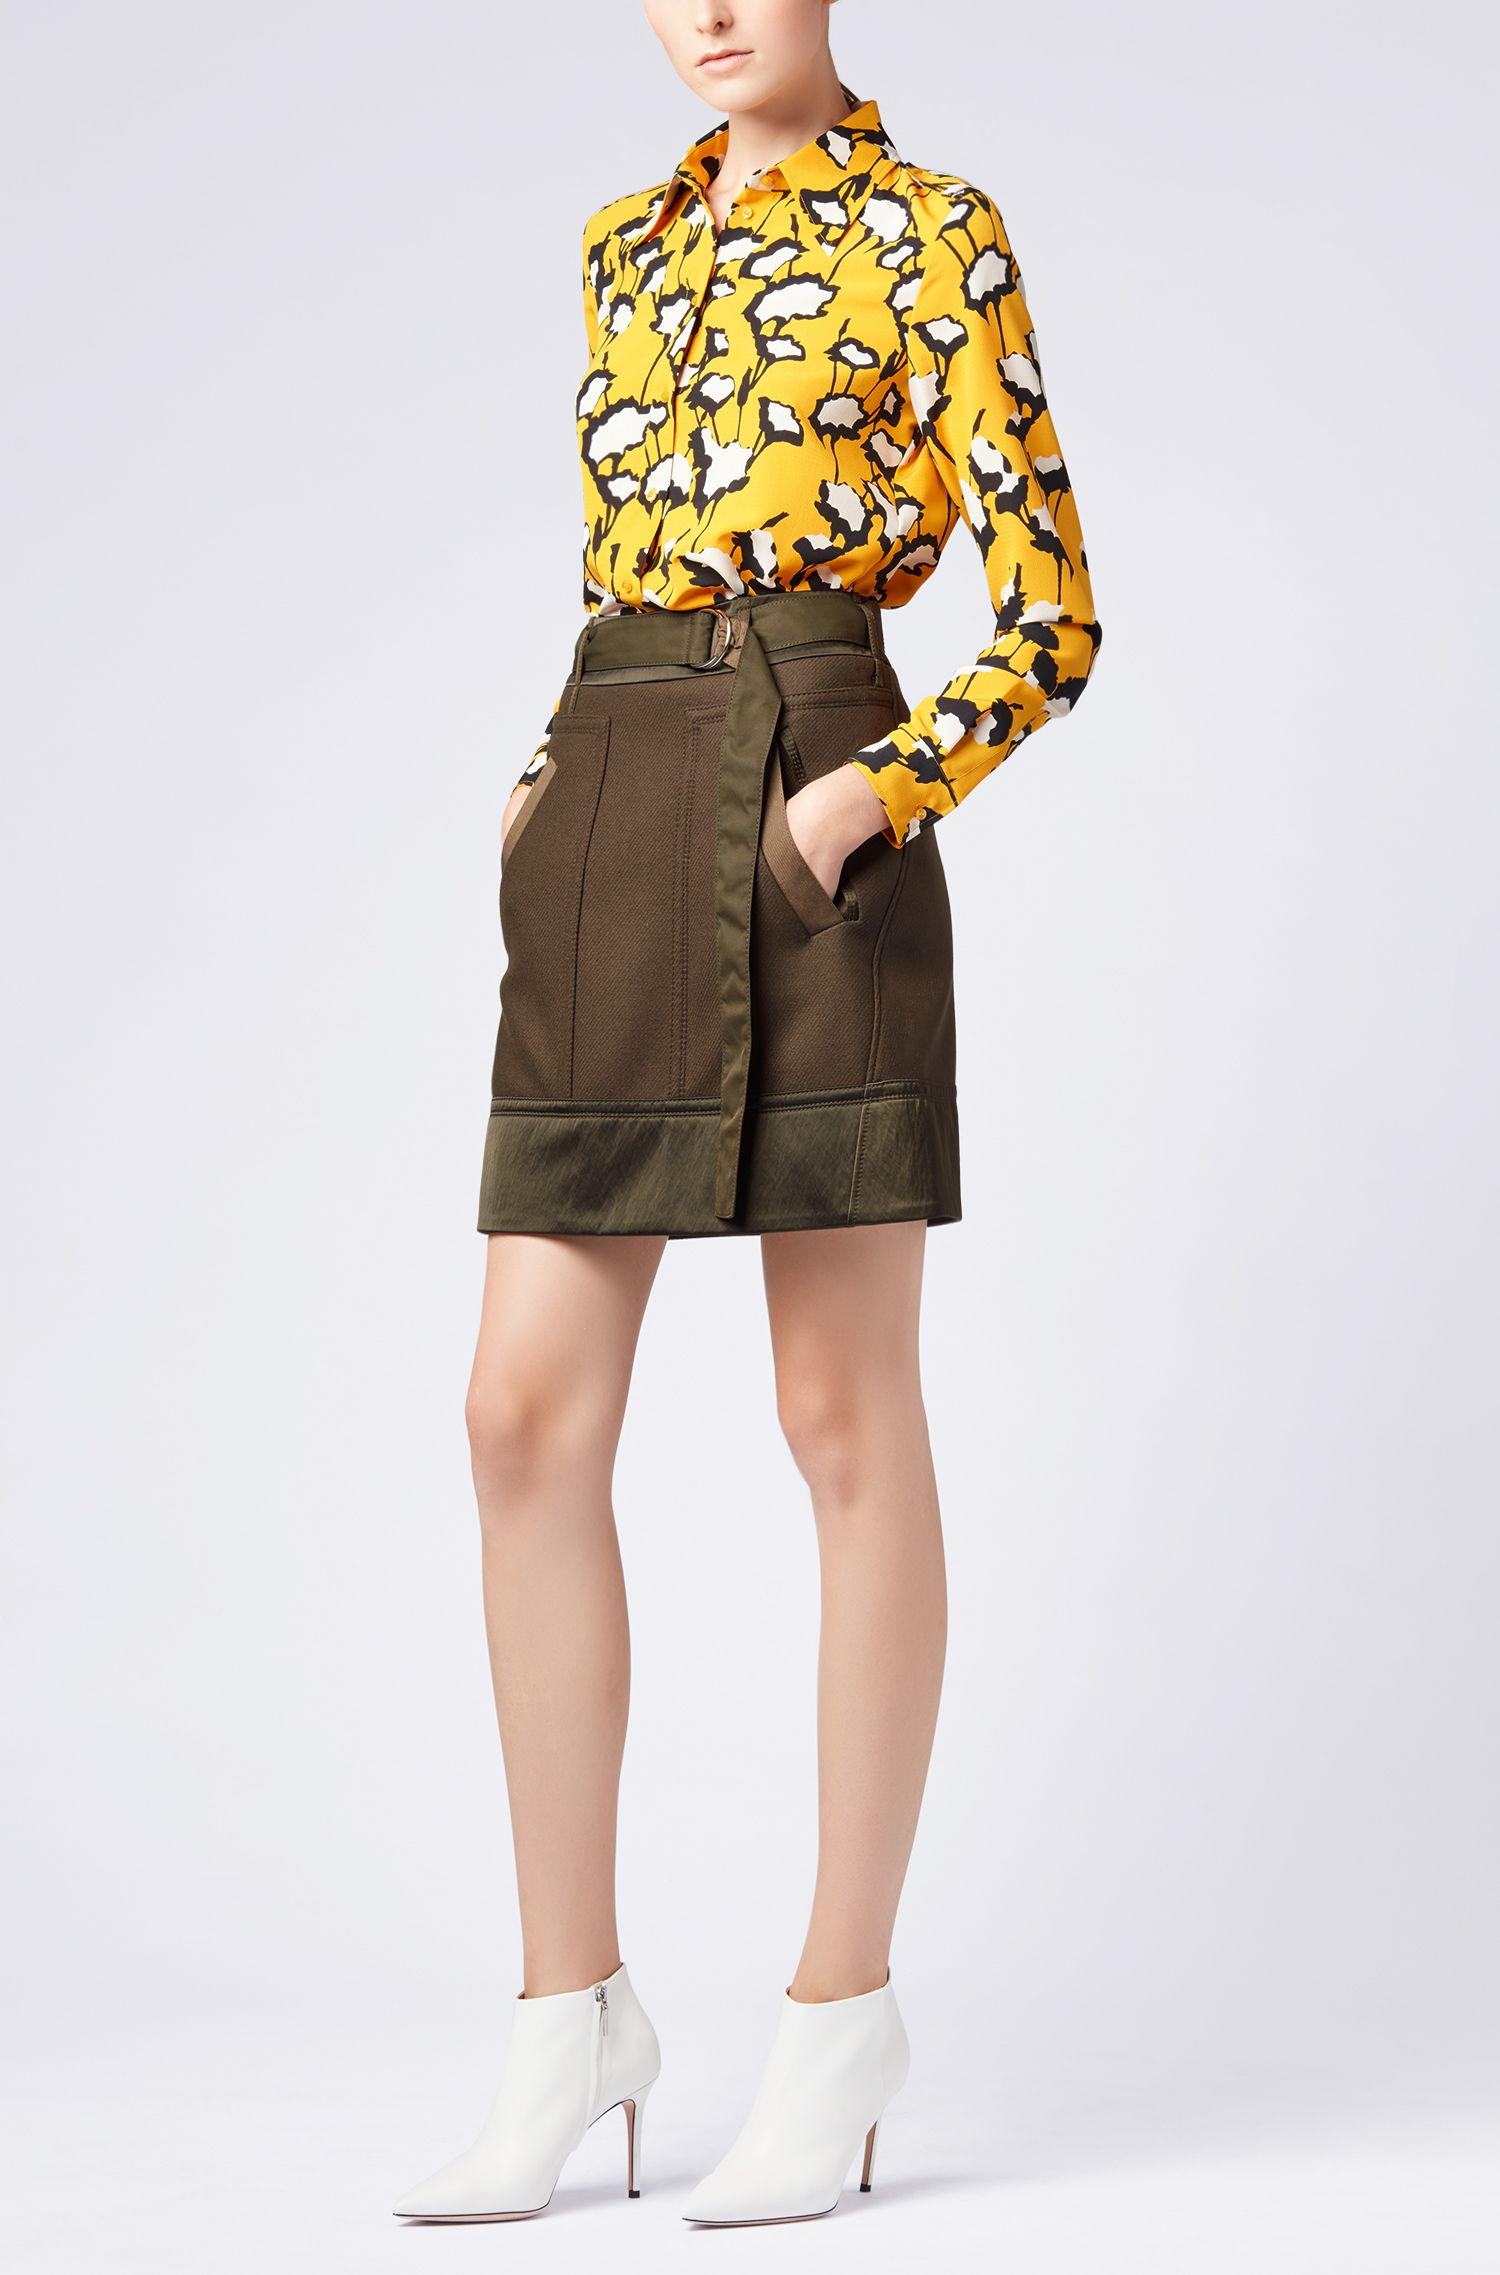 Military-inspired A-line miniskirt in an Italian wool blend